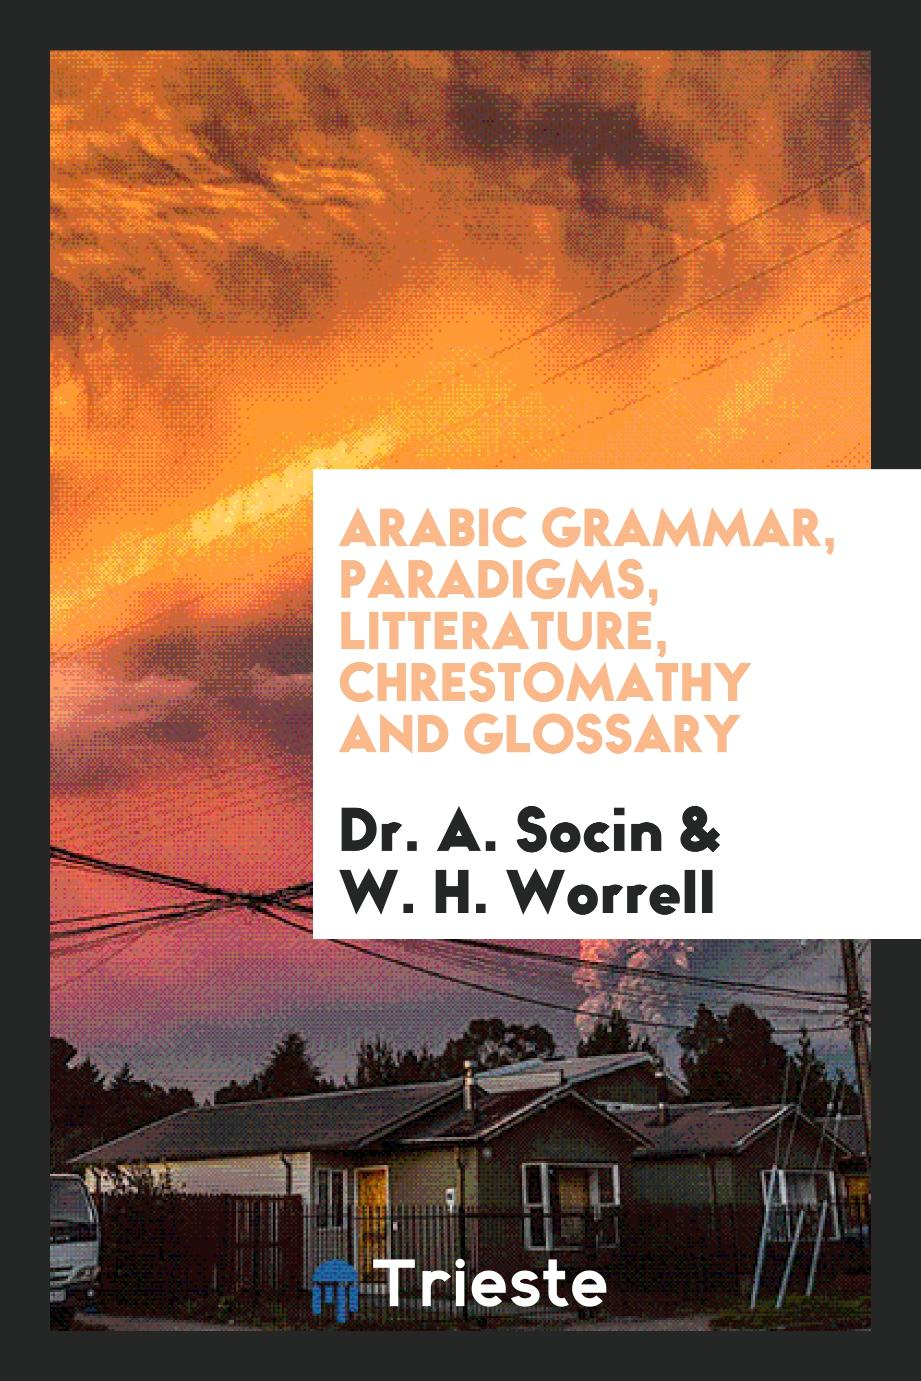 Arabic Grammar, Paradigms, Litterature, Chrestomathy and Glossary